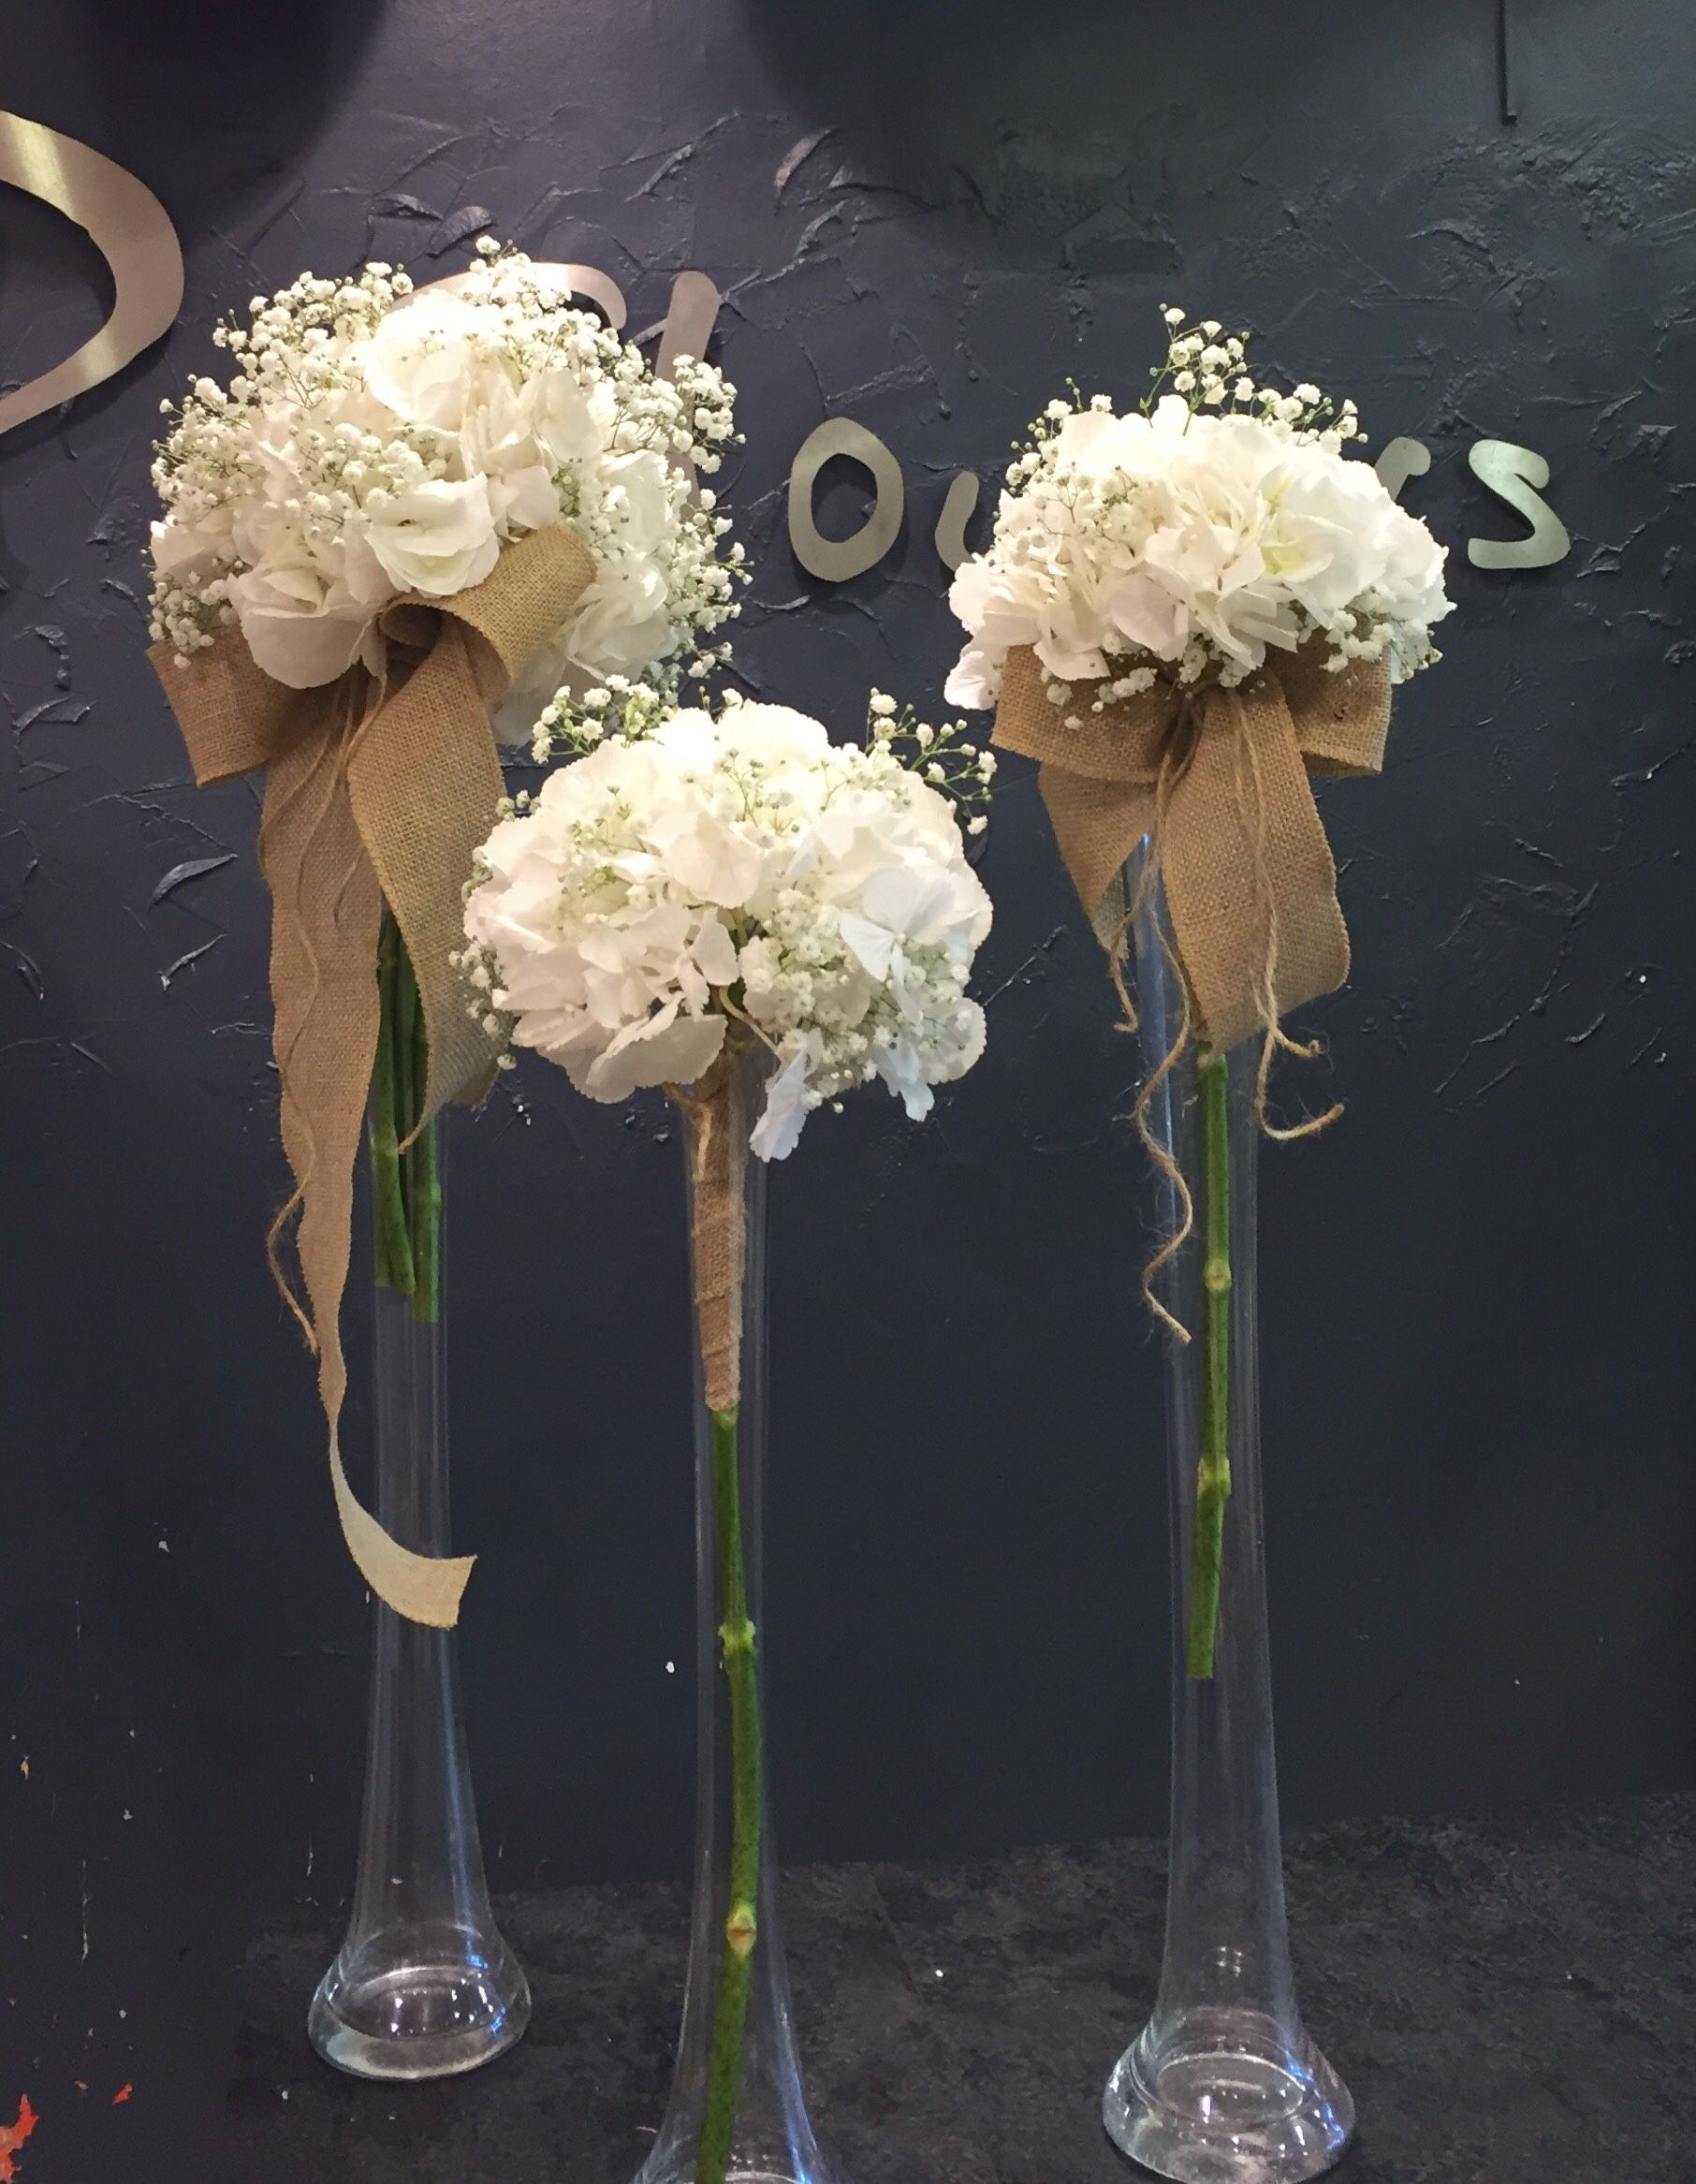 Pure white bouquets with gypsophila and white hydrangea